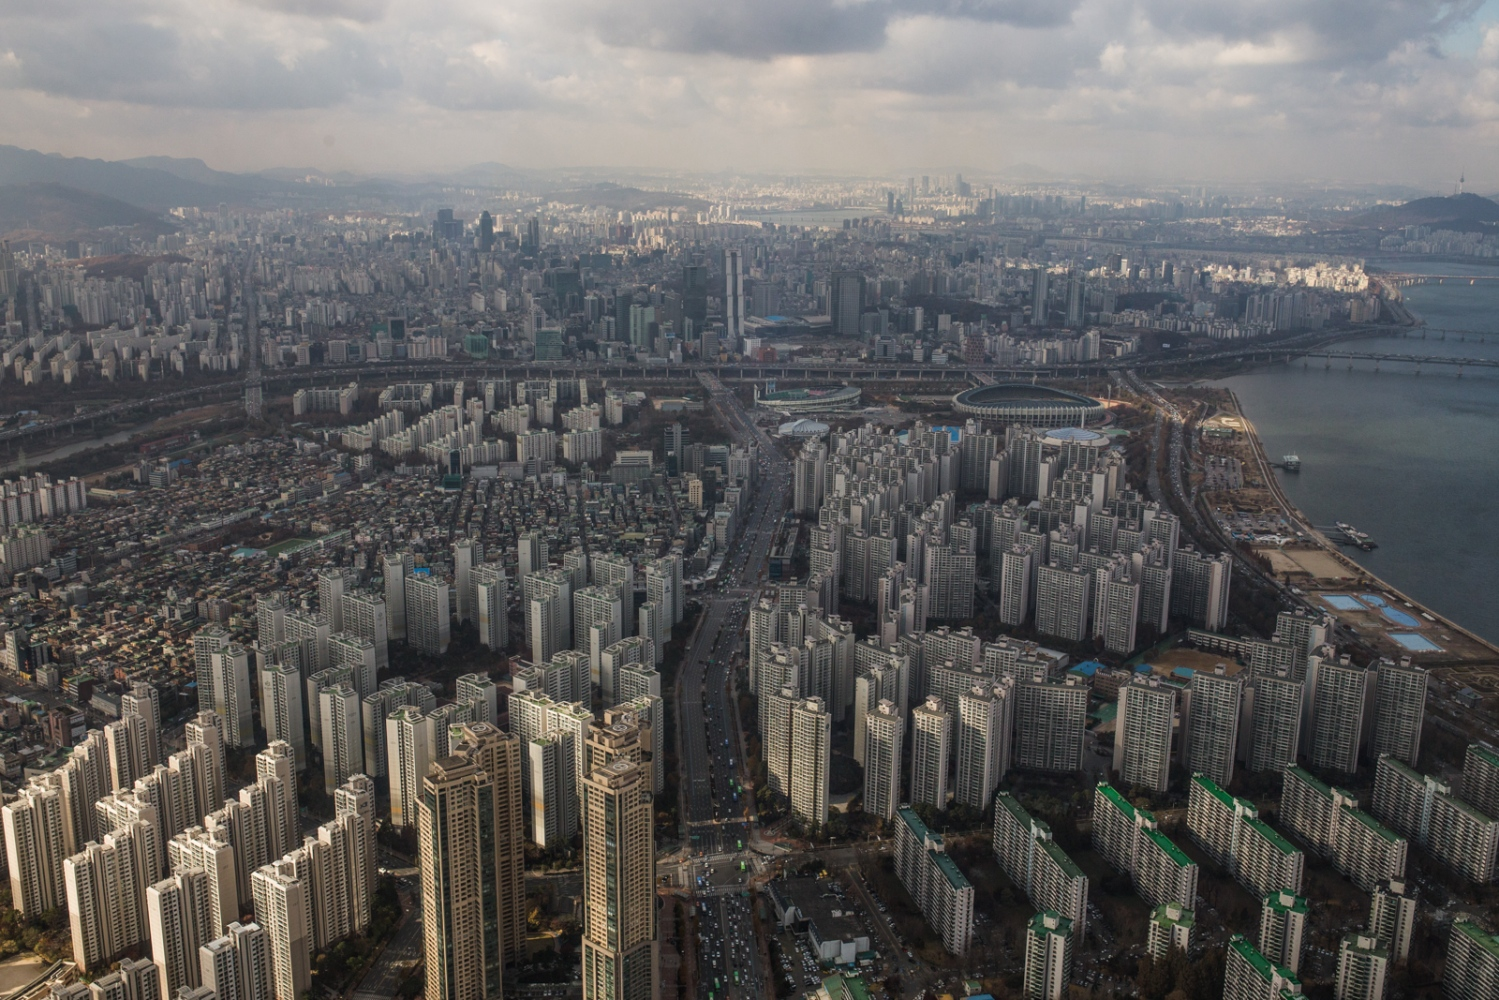 The ever-expanding skyline of Seoul, South Korea. Mega-cities have a large part to play in humanities adaptation to climate change. Cities are population sinks and as more of humanity is concentrated into cities it is crucial that we source our energy from clean sources that move away from fossil fuels. Most major cities across the globe are still powered by fossi fuels, such as coal.